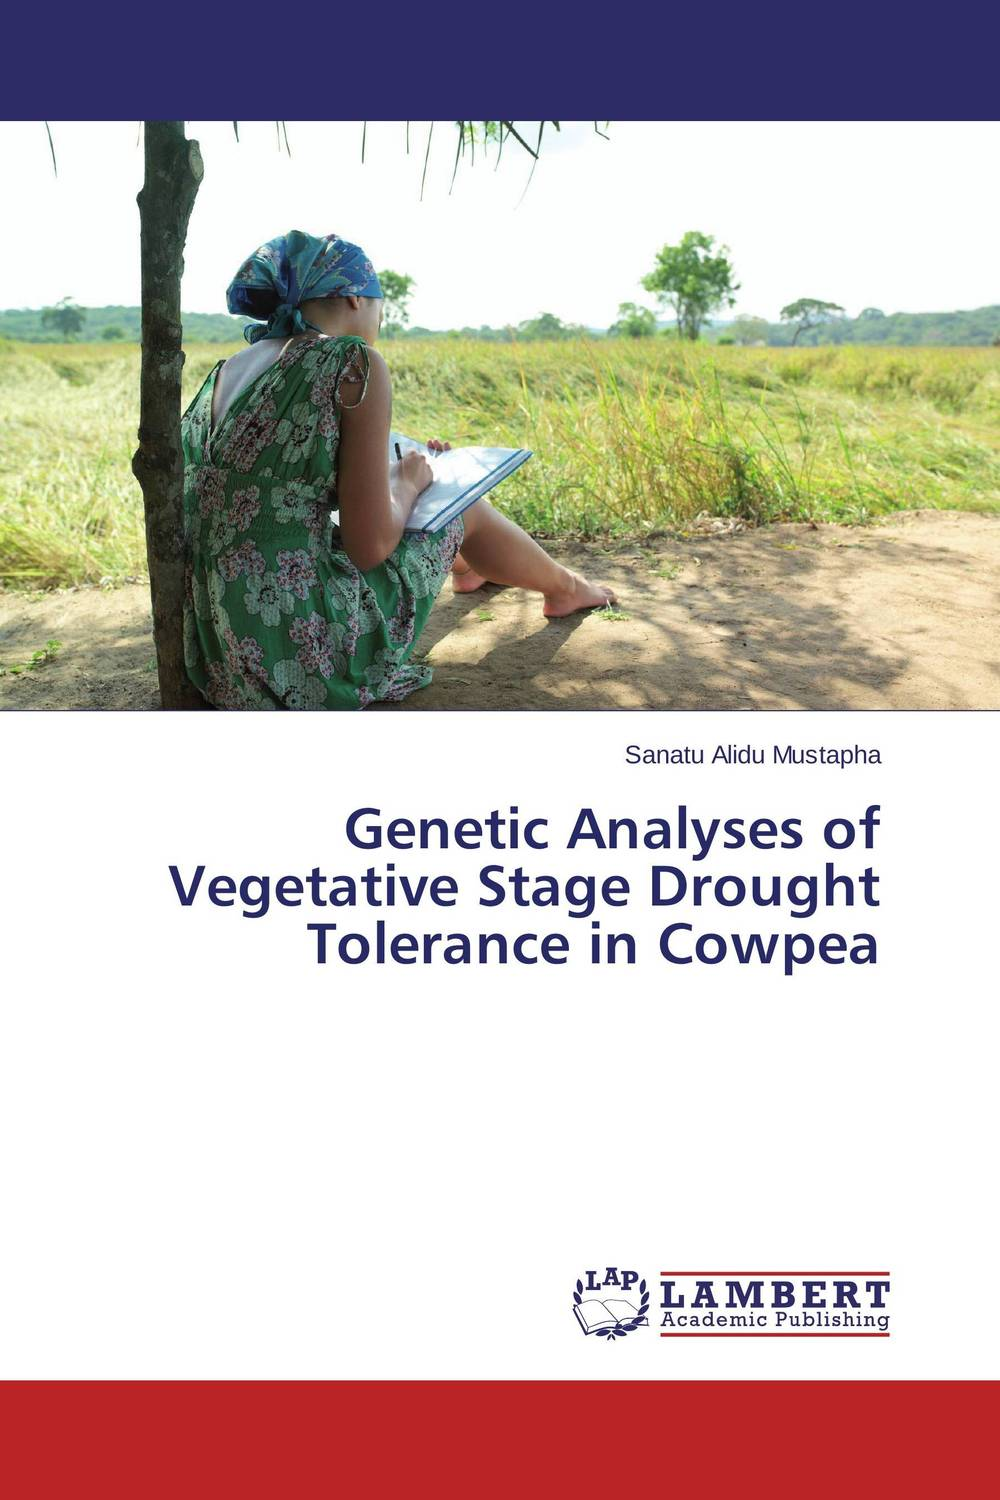 Genetic Analyses of Vegetative Stage Drought Tolerance in Cowpea breeding for improvement of water stress tolerance in bread wheat